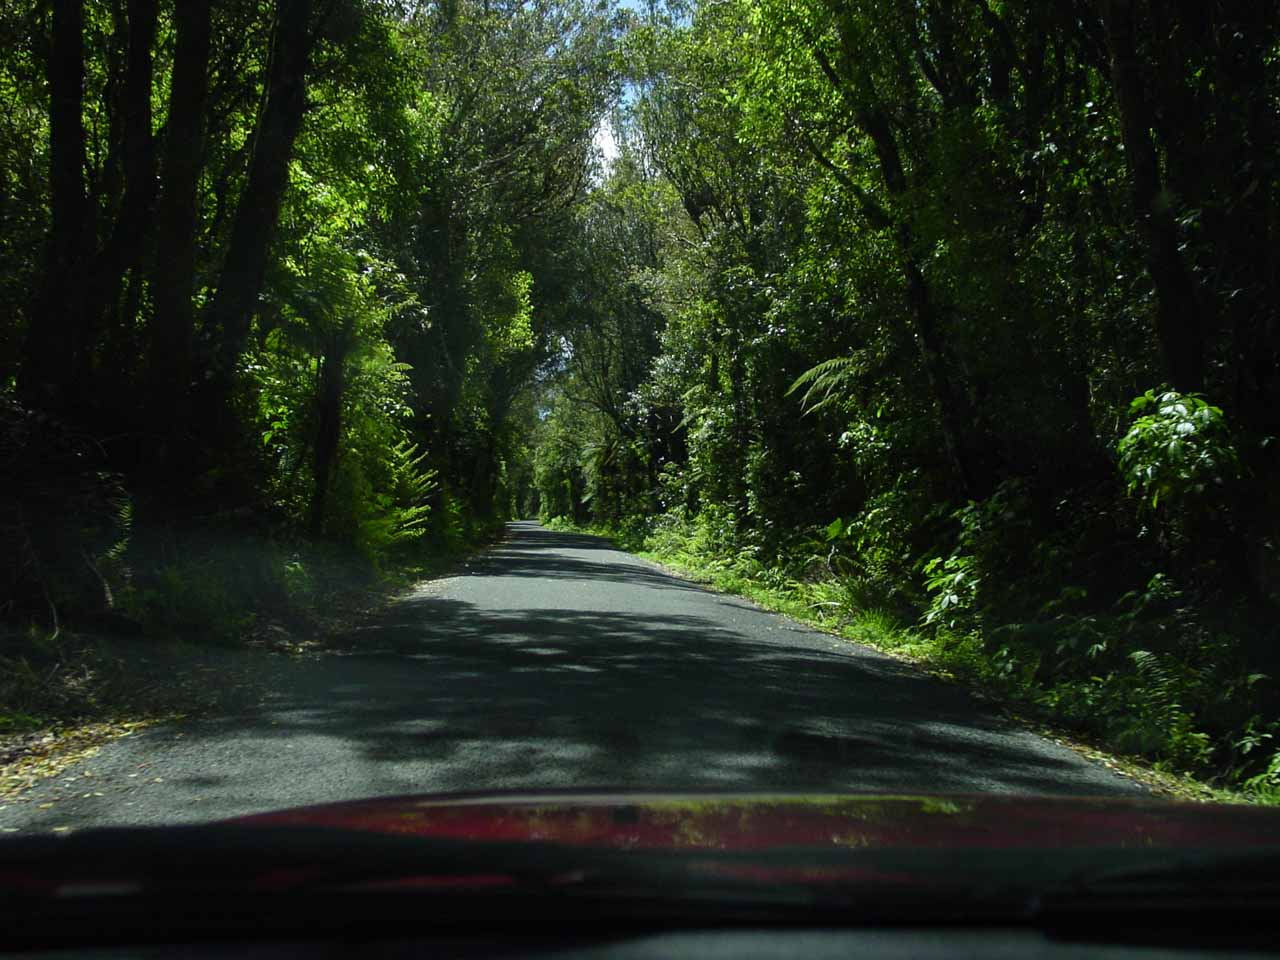 On a narrow road taking us up towards the Dawson Falls Visitor Centre for Egmont National Park